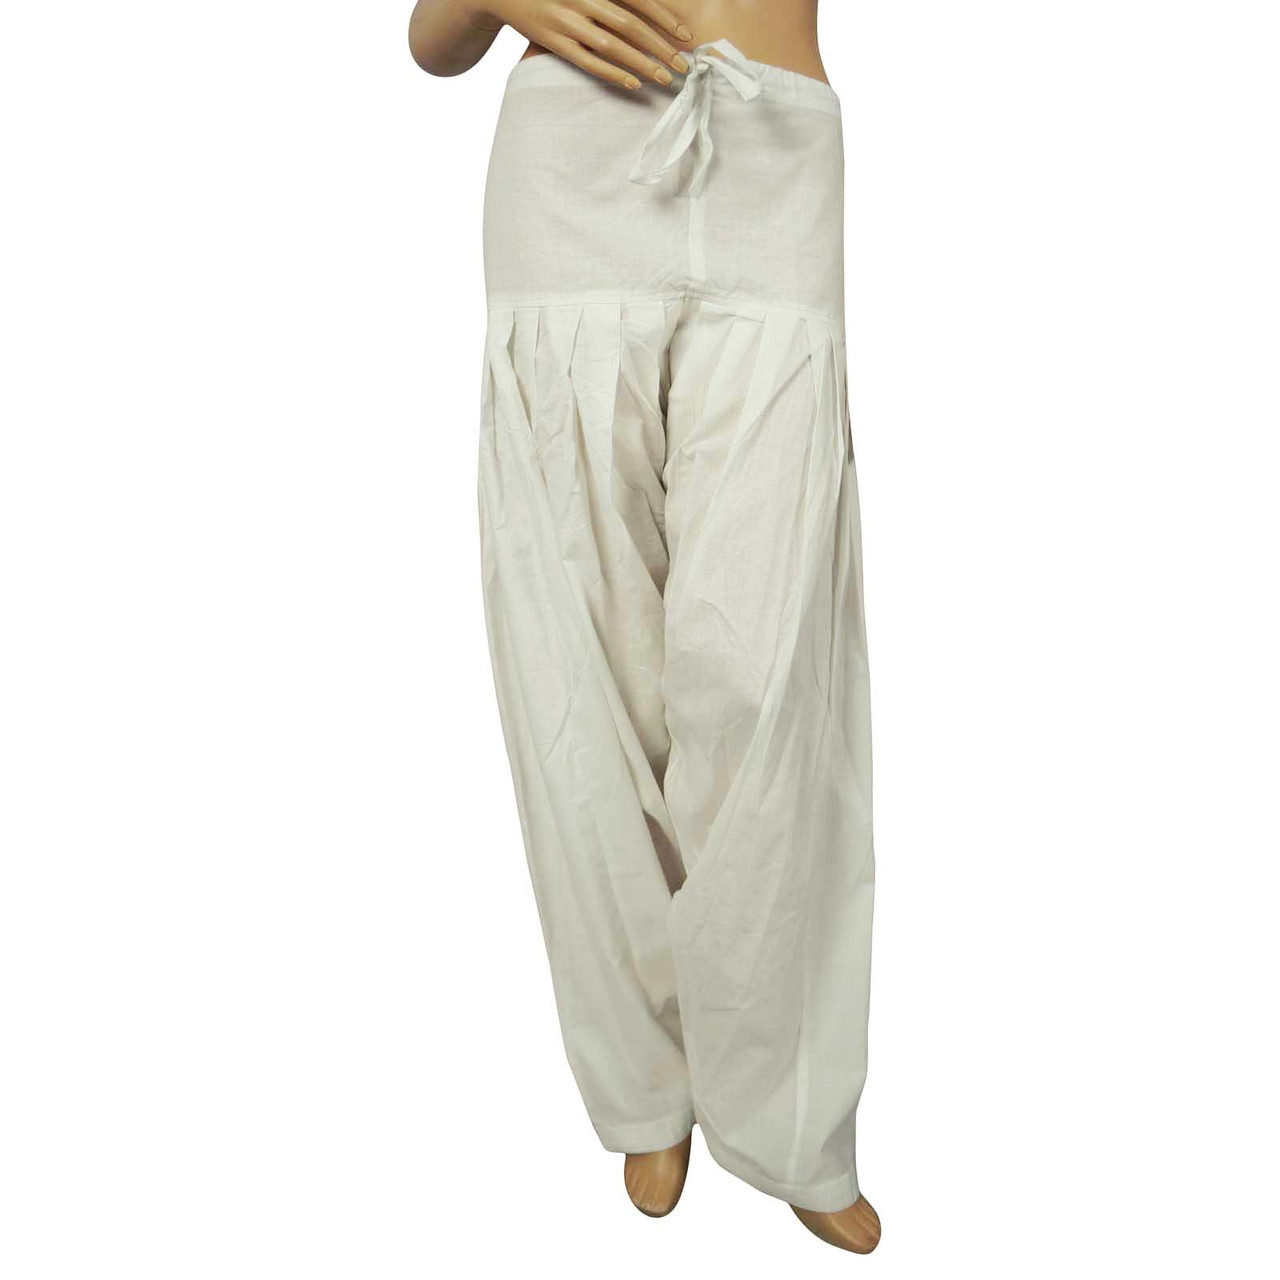 Pure Cotton Churidar Salwaar Chiffon Dupatta Women Pants Bottom Wear Indian